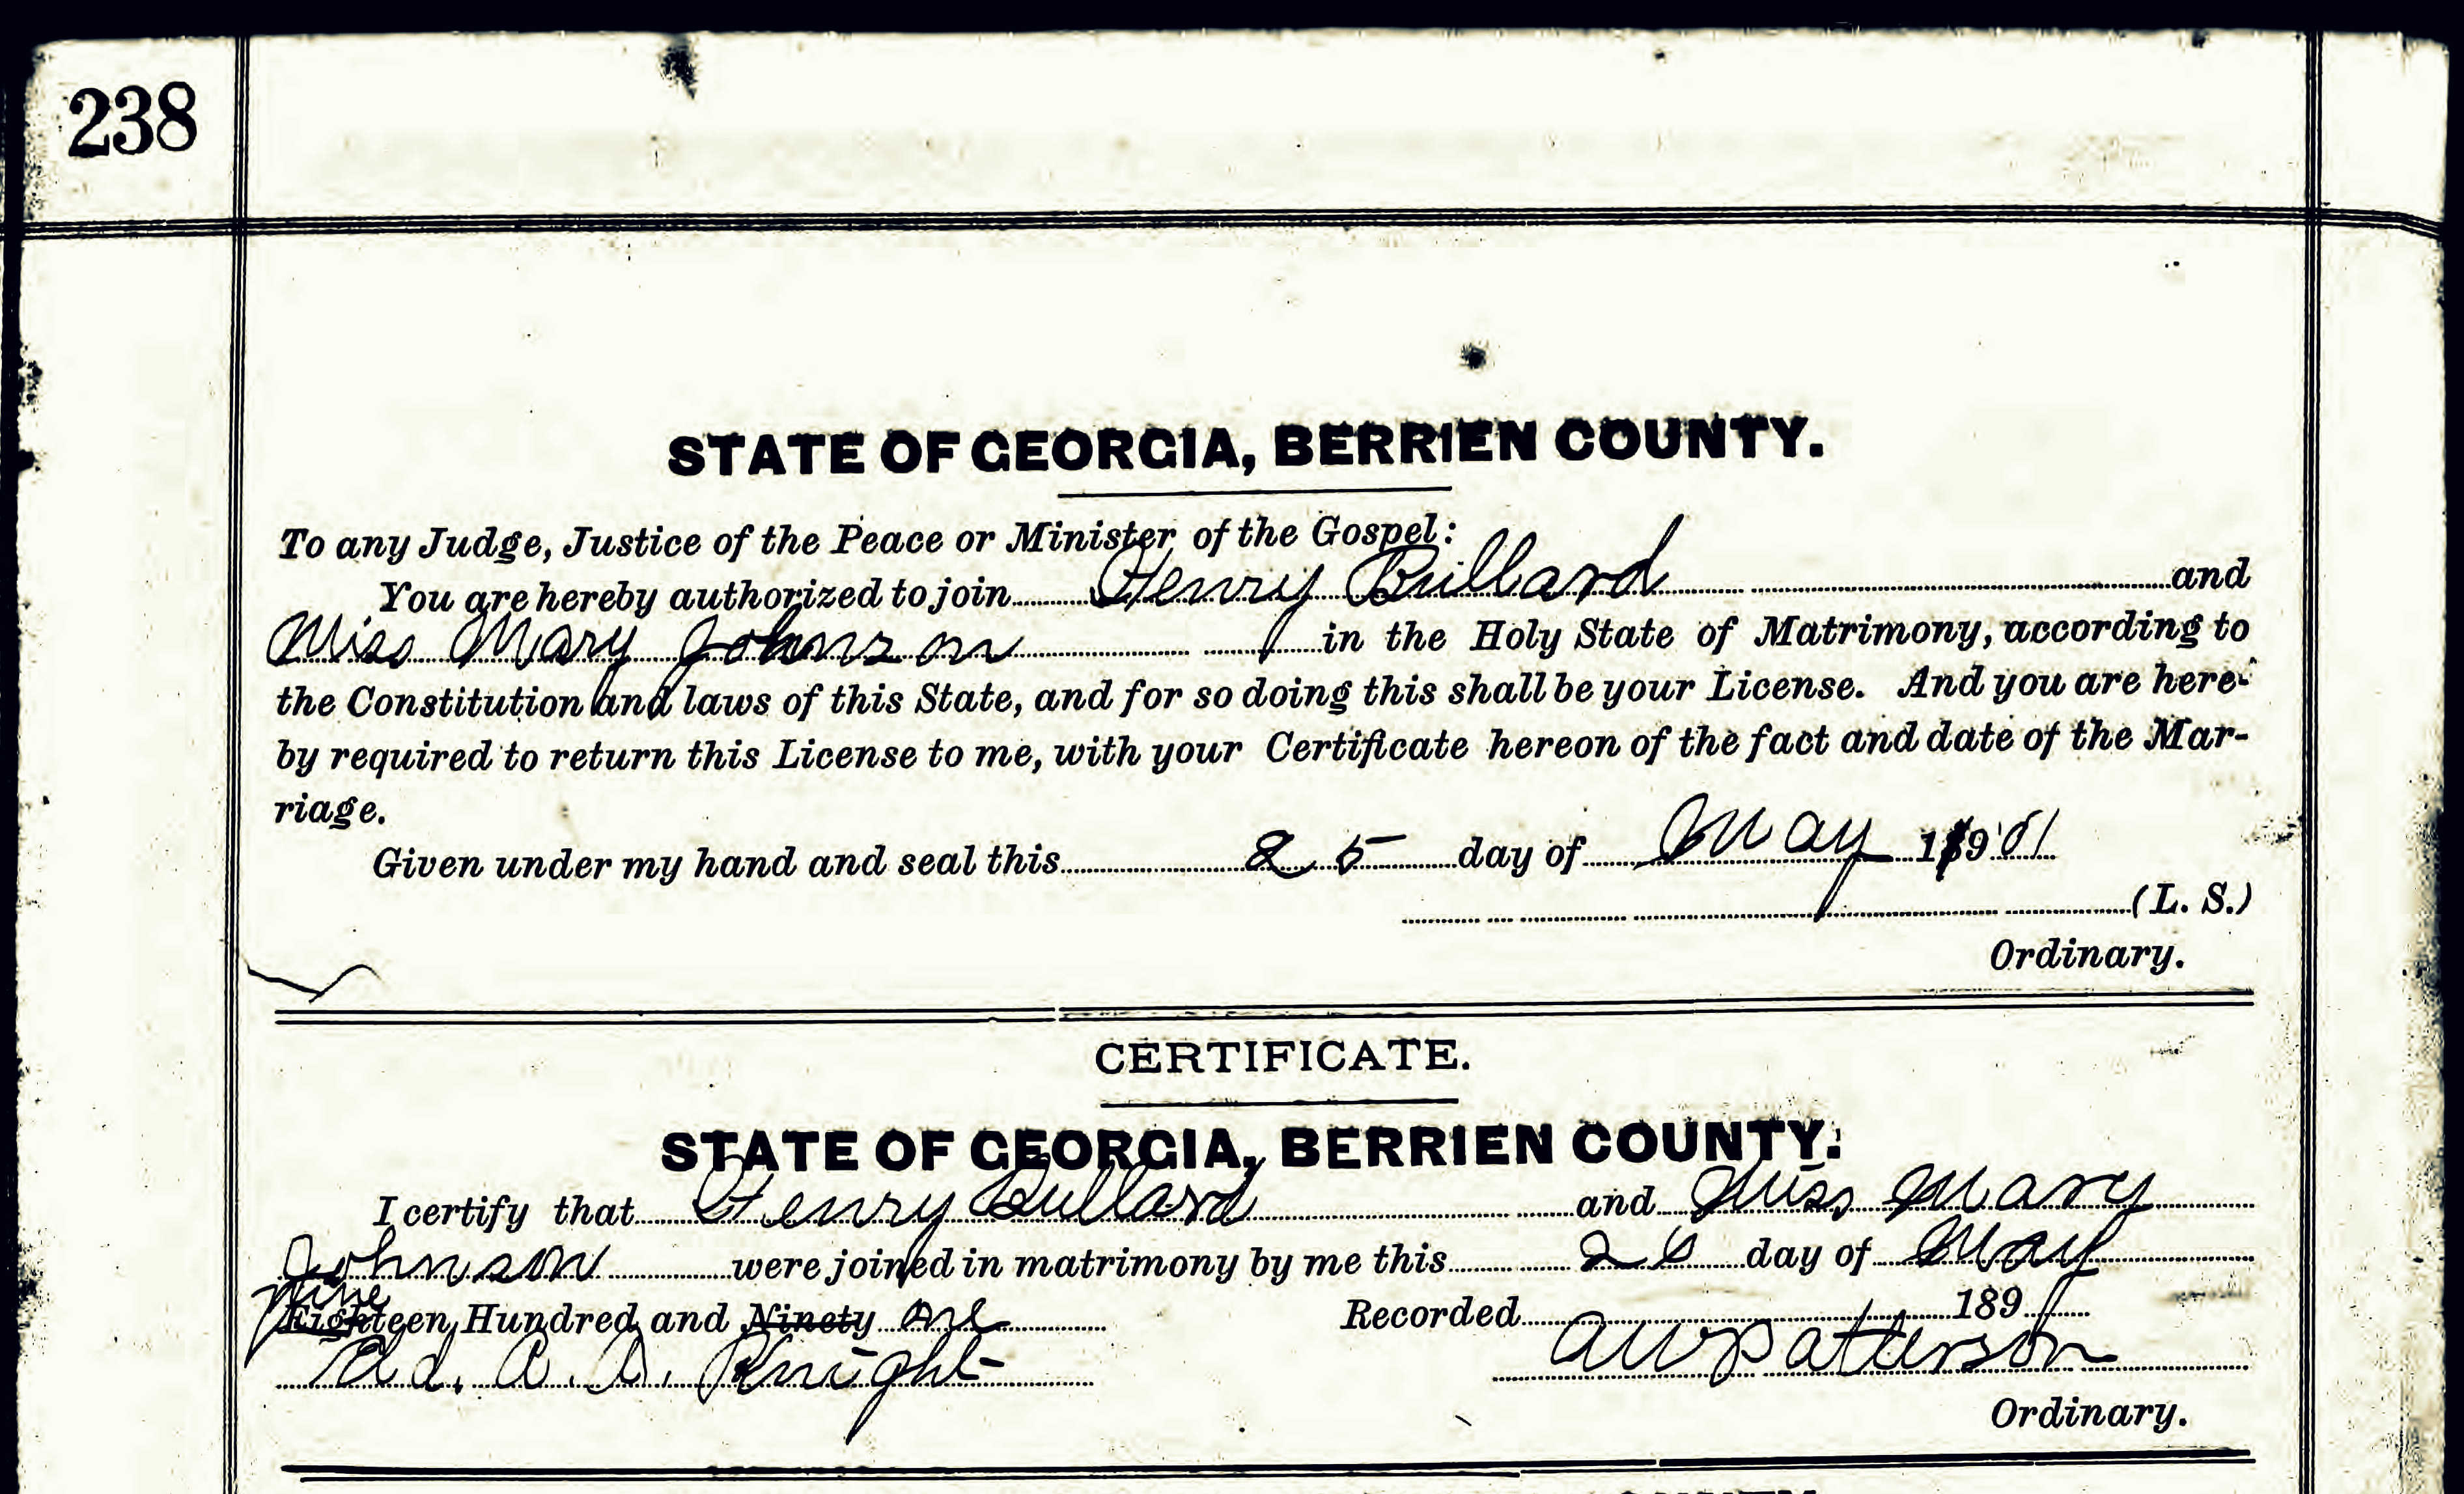 Berrien light infantry ray city history blog marriage certificate of henry needham bullard and miss mary johnson berrien county ga 1betcityfo Choice Image